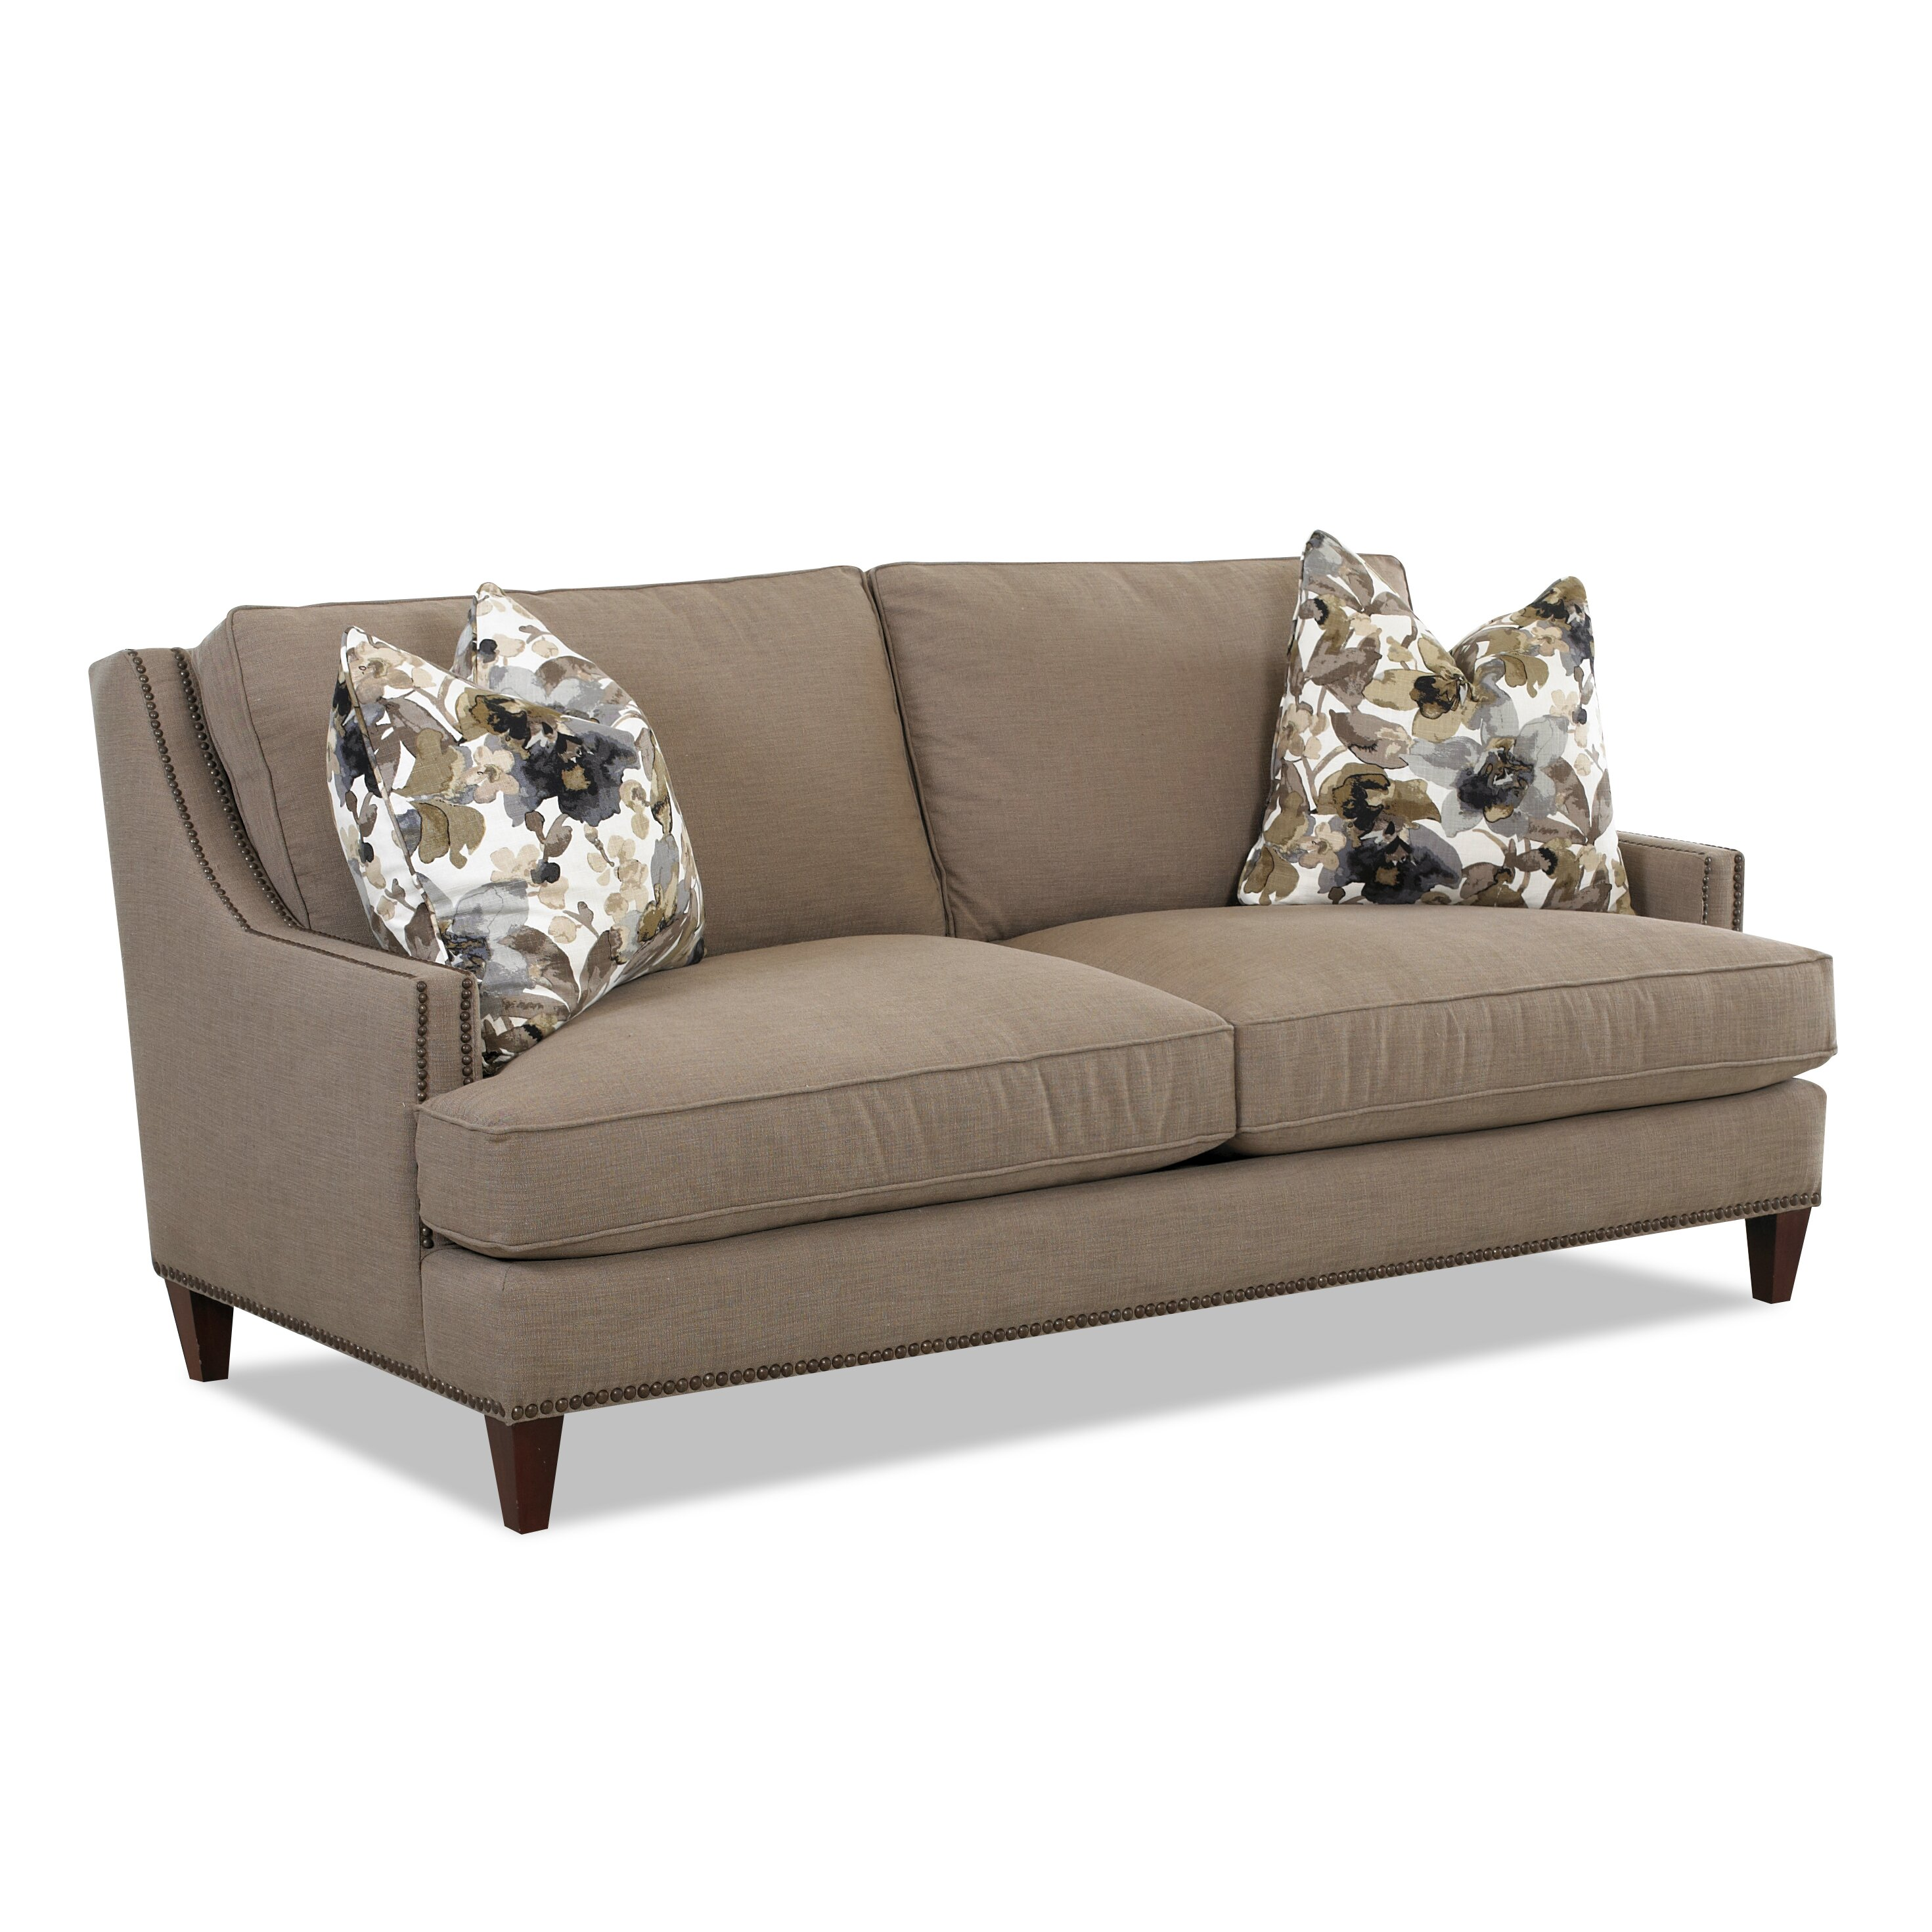 arnold sofas and beds